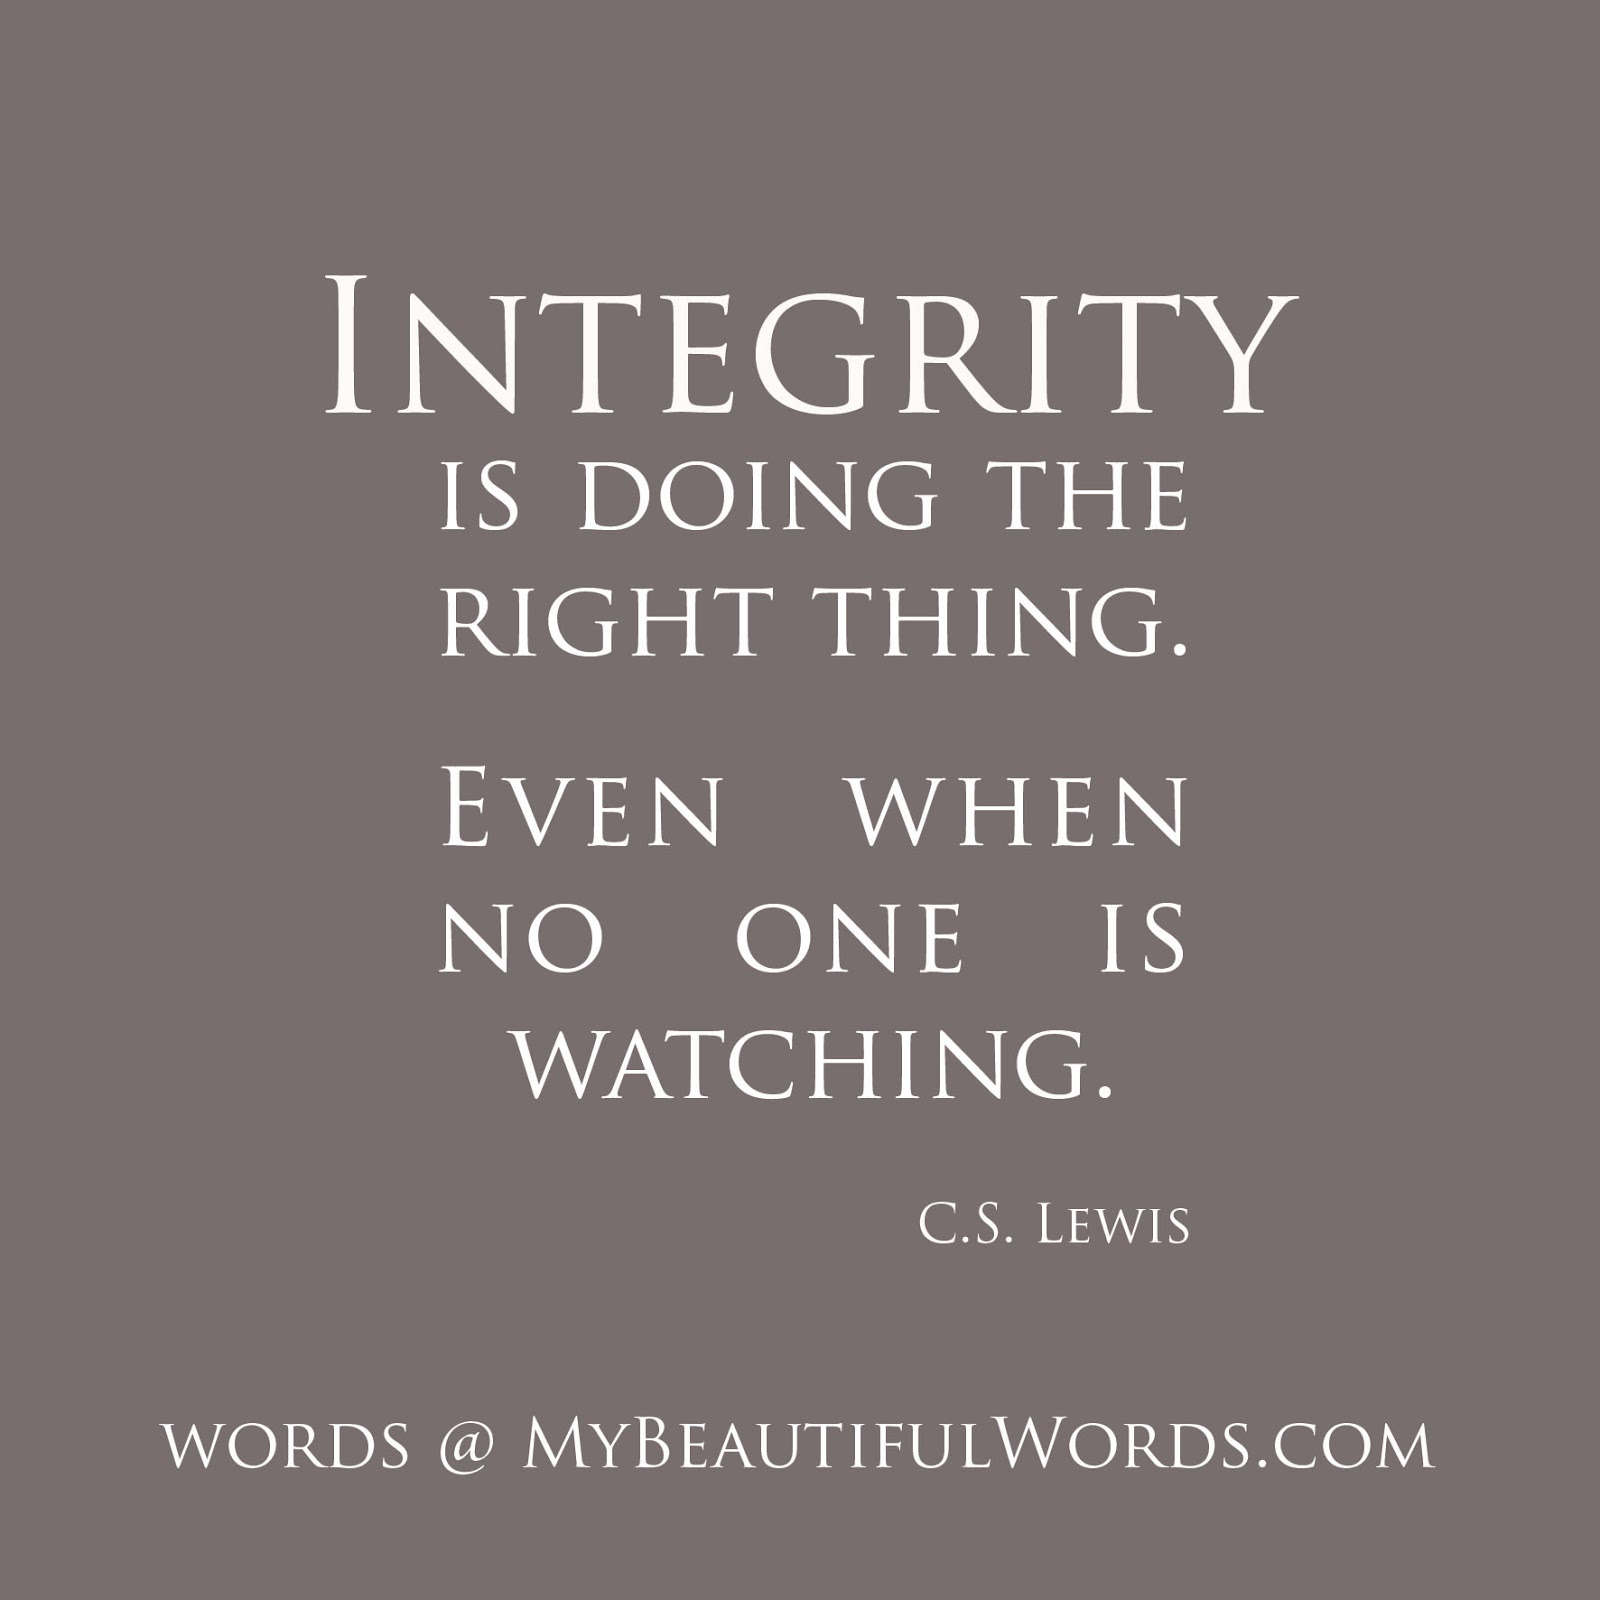 Famous Quotes Integrity Character. QuotesGram